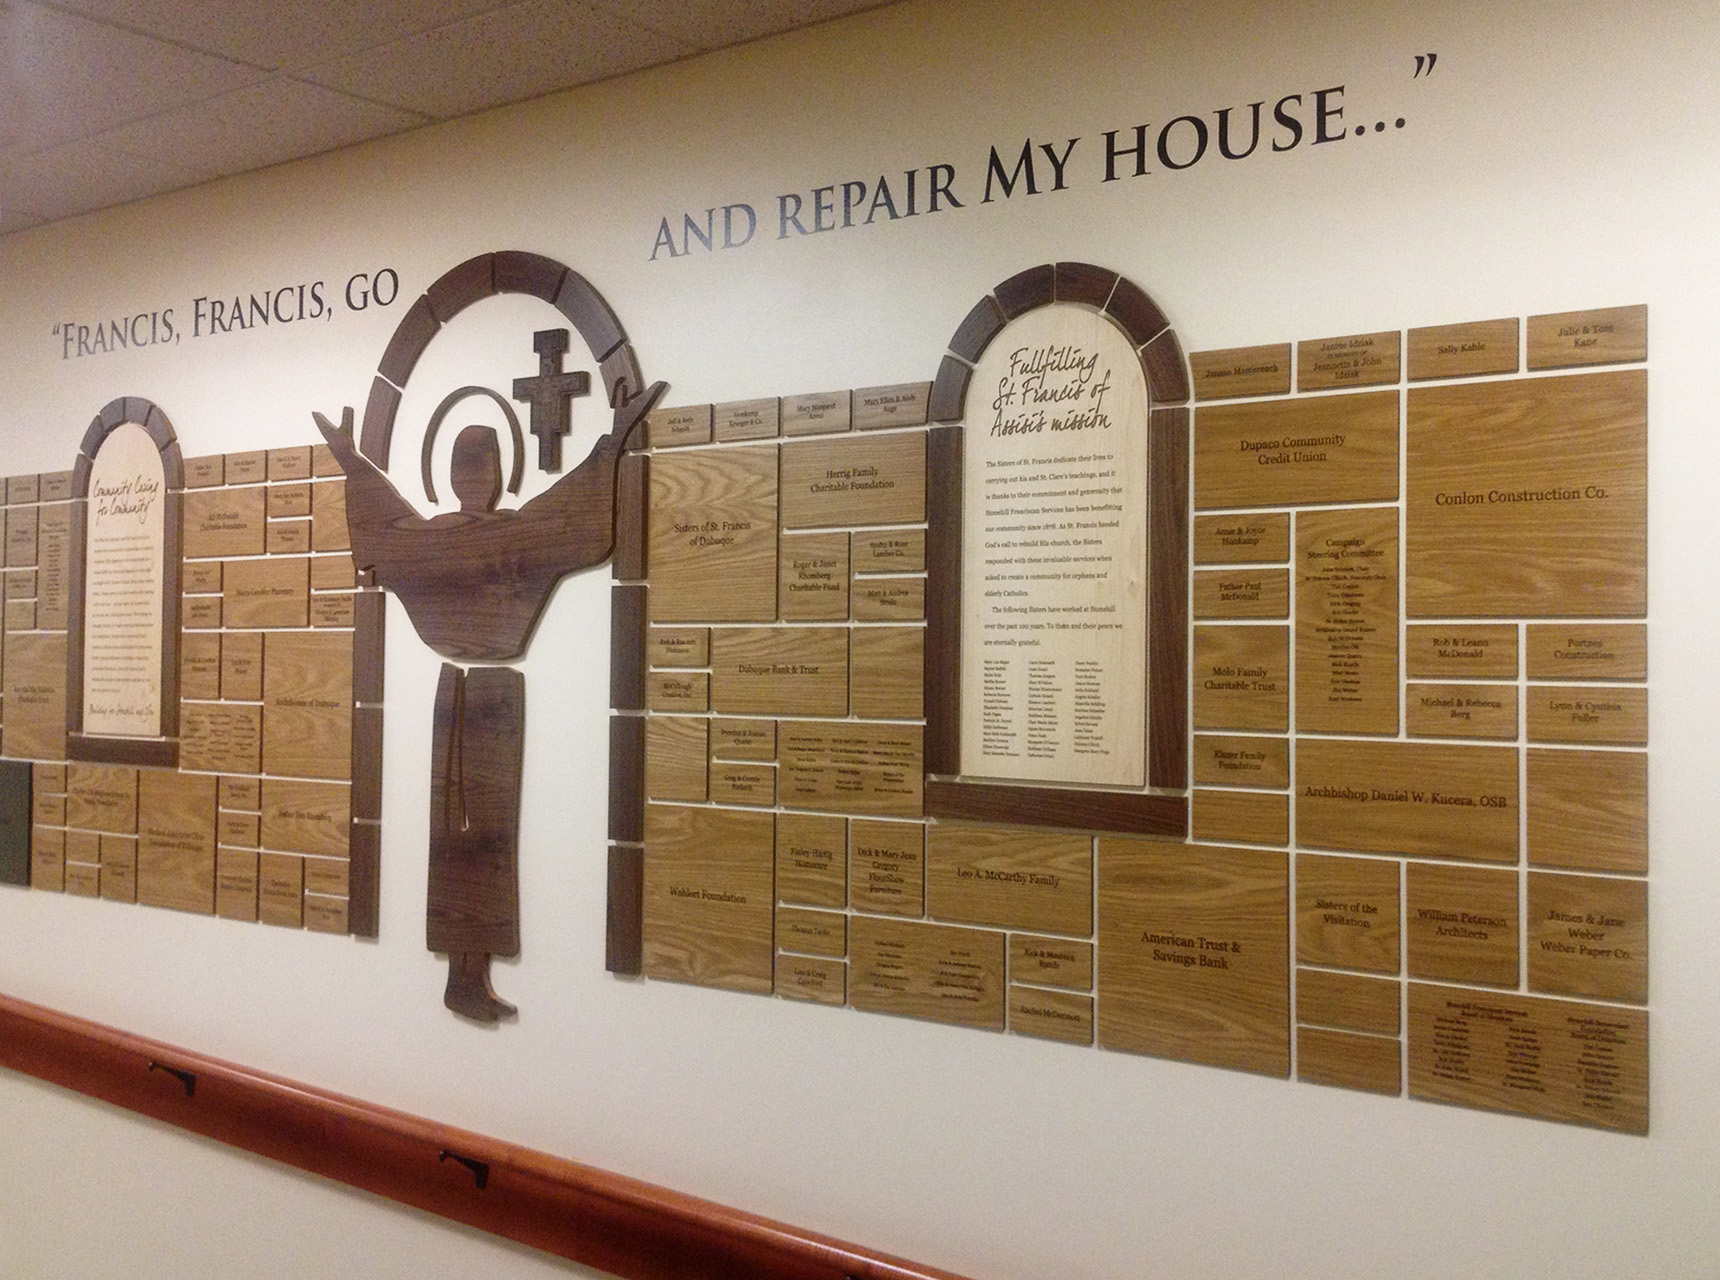 """Stonehill Francis, Francis, Go and Repair My House"""" Wall Plaque Display"""